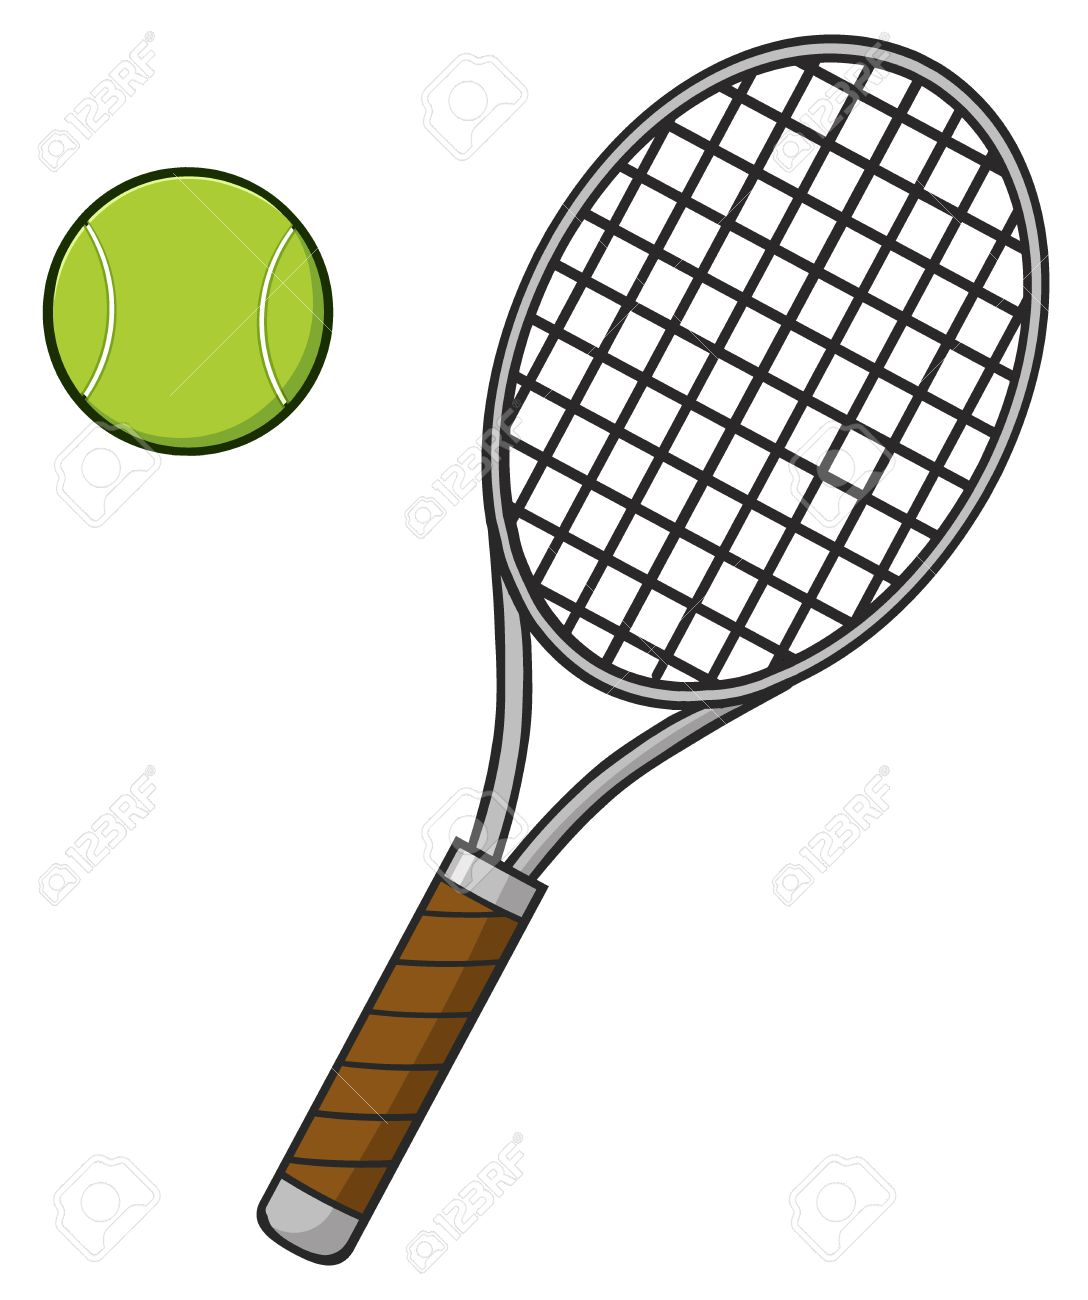 Cartoon Tennis Ball And Racket Stock Photo Picture And Royalty Free